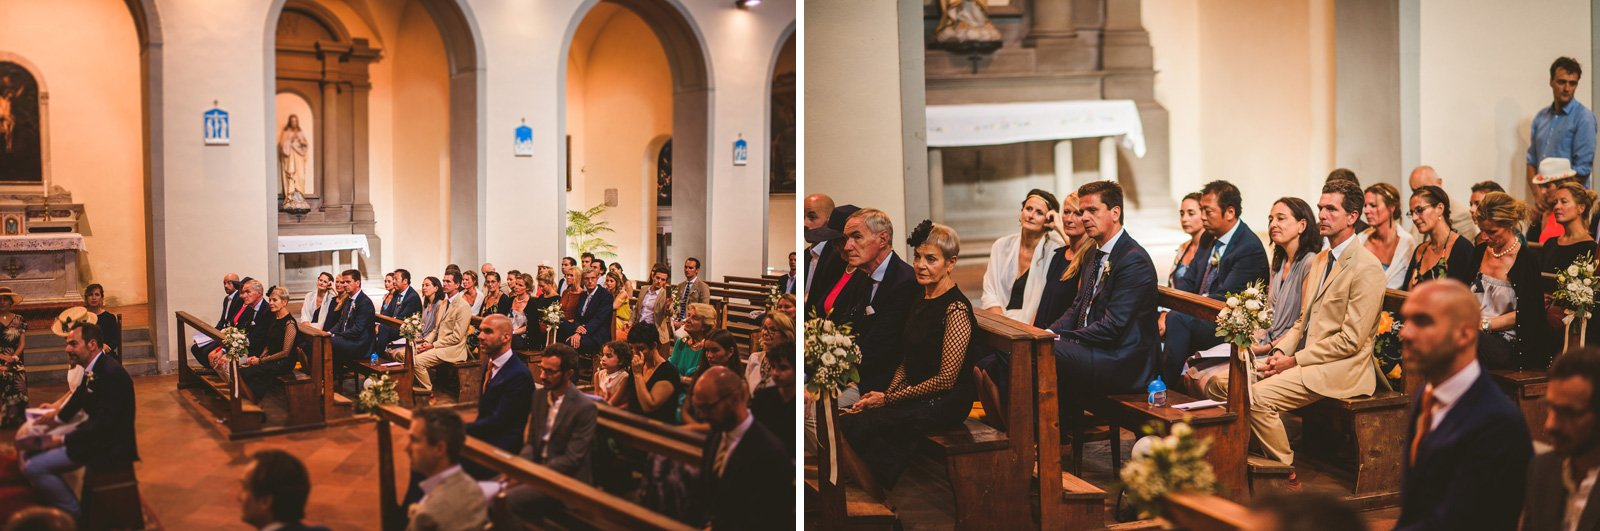 Lovely Wedding in Villa at Rignana by Federico Pannacci Wedding Photographer 37